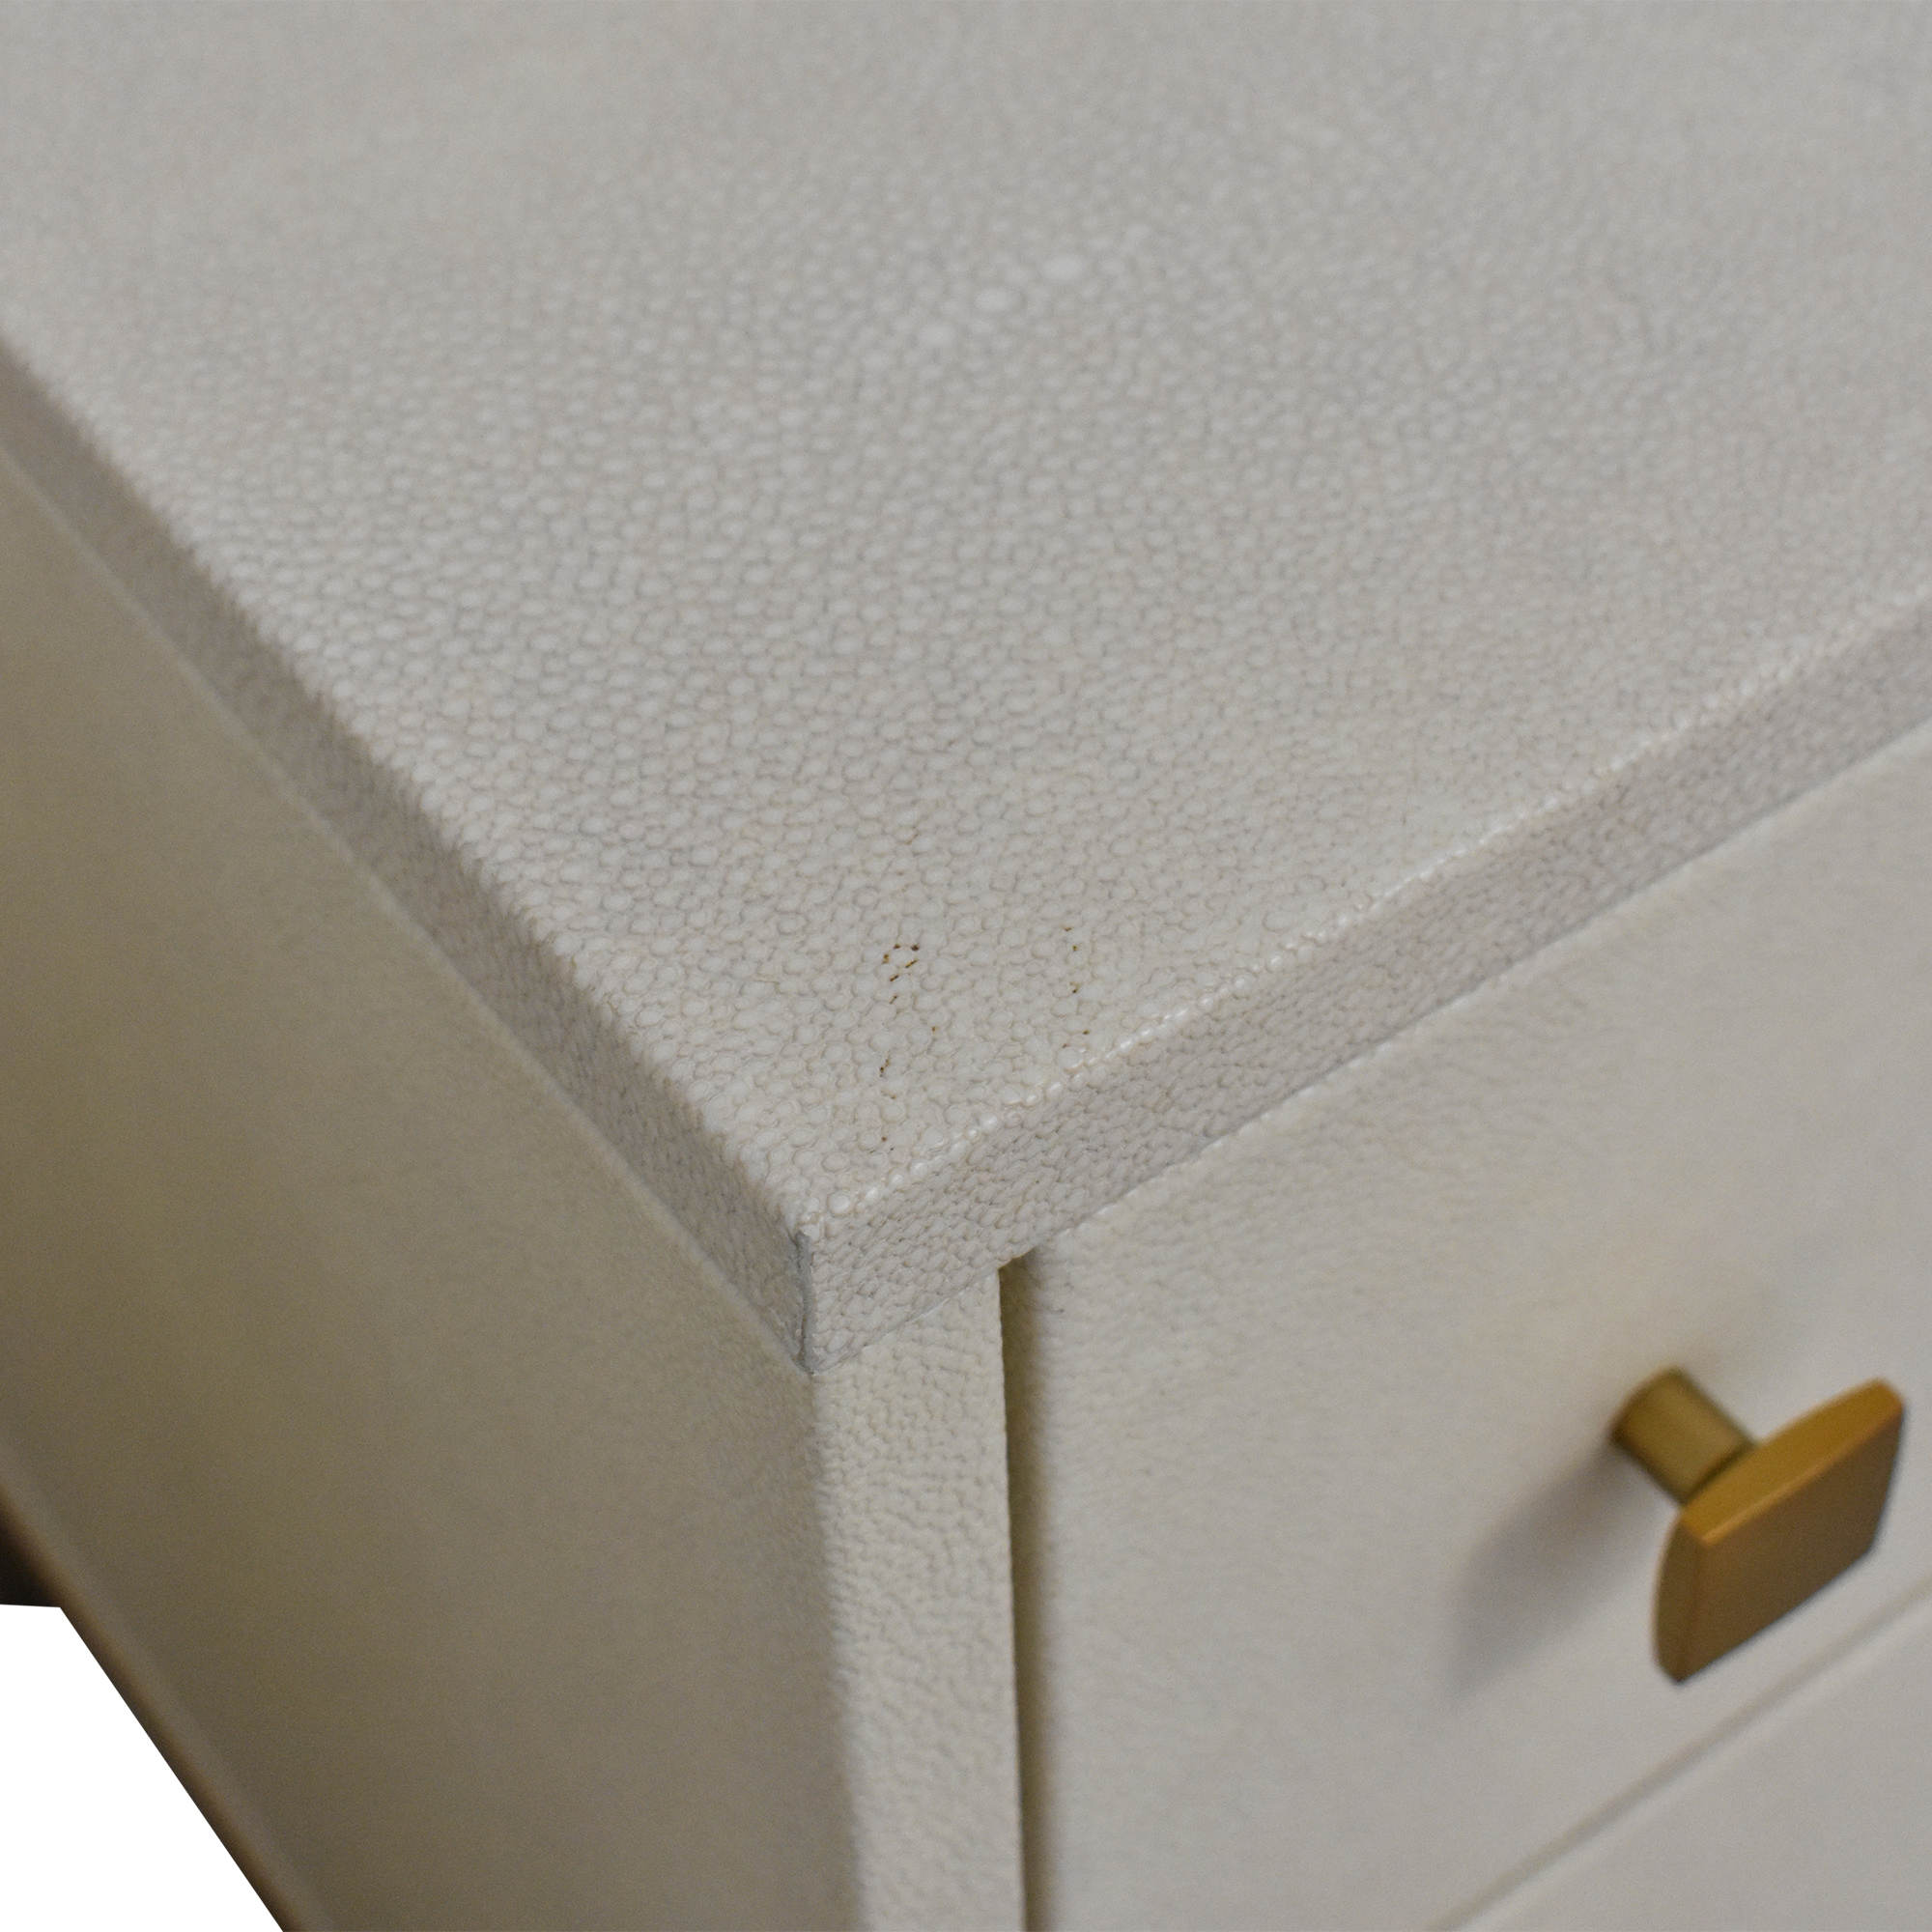 CB2 Shagreen Embossed Nightstands / End Tables